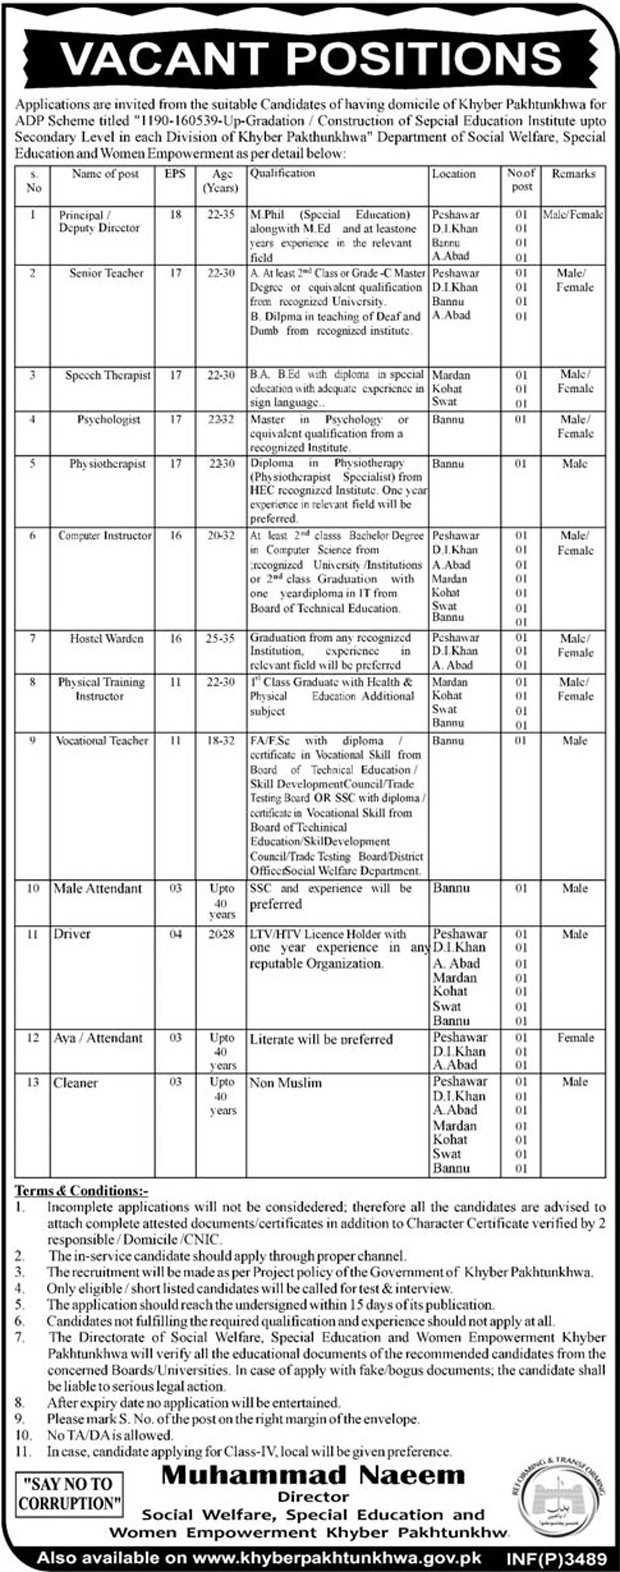 Social welfare, Special Education & Women Empowerment, KPK Jobs 28 July 2017